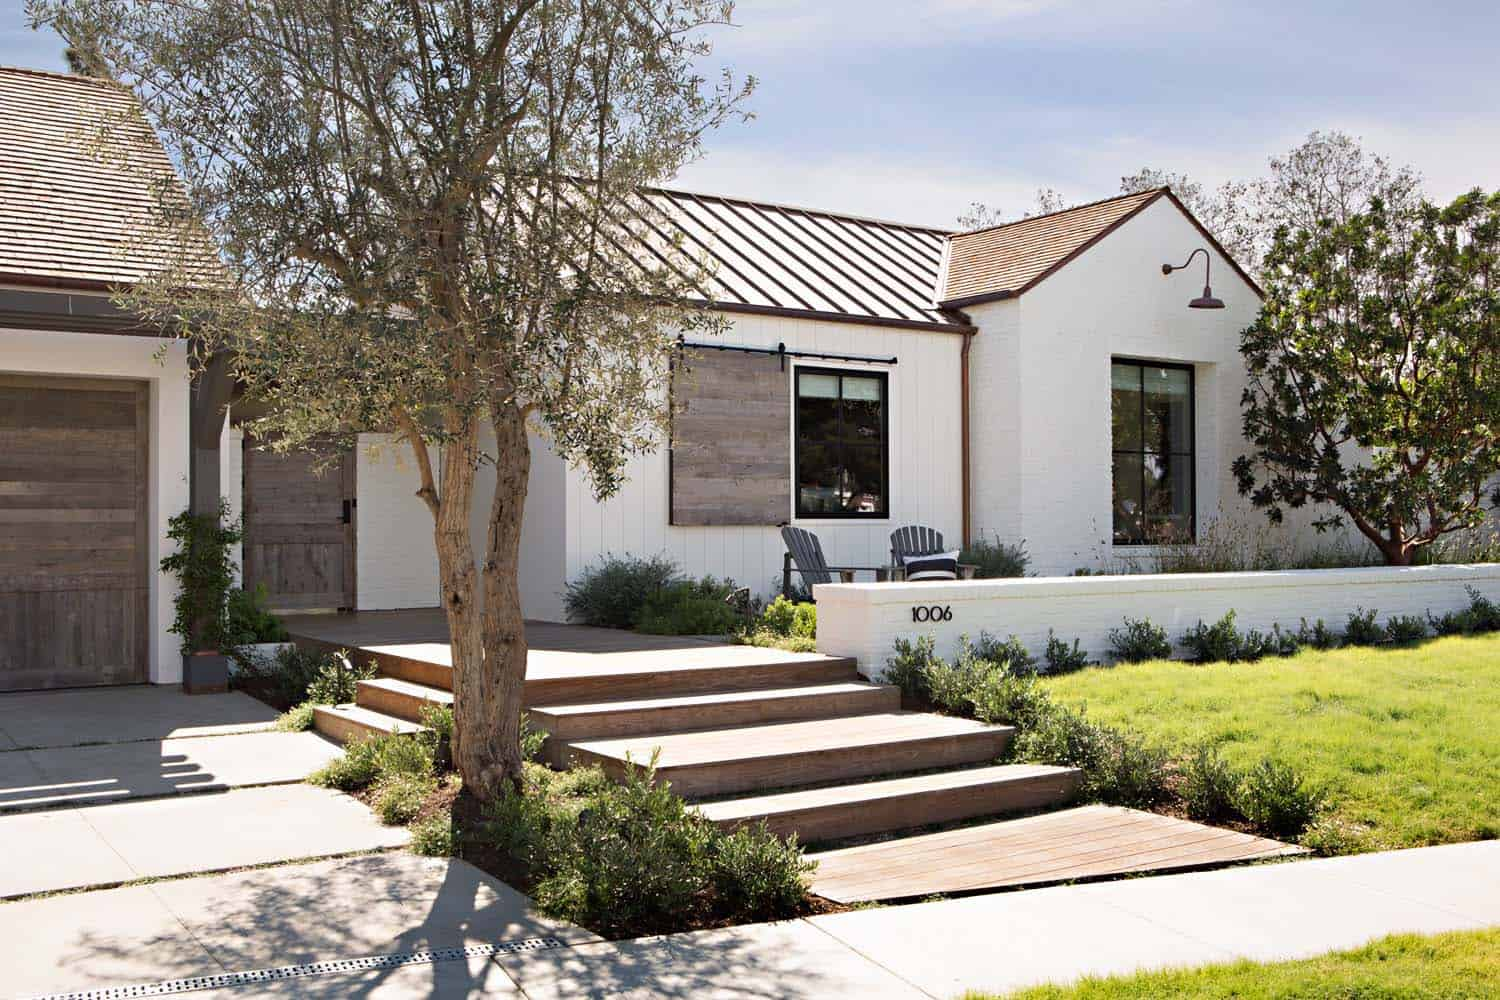 Chic modern farmhouse in Newport Beach with emphasis on  : Modern Farmhouse Style Eric Olsen Design 01 1 Kindesign from onekindesign.com size 1500 x 1000 jpeg 242kB